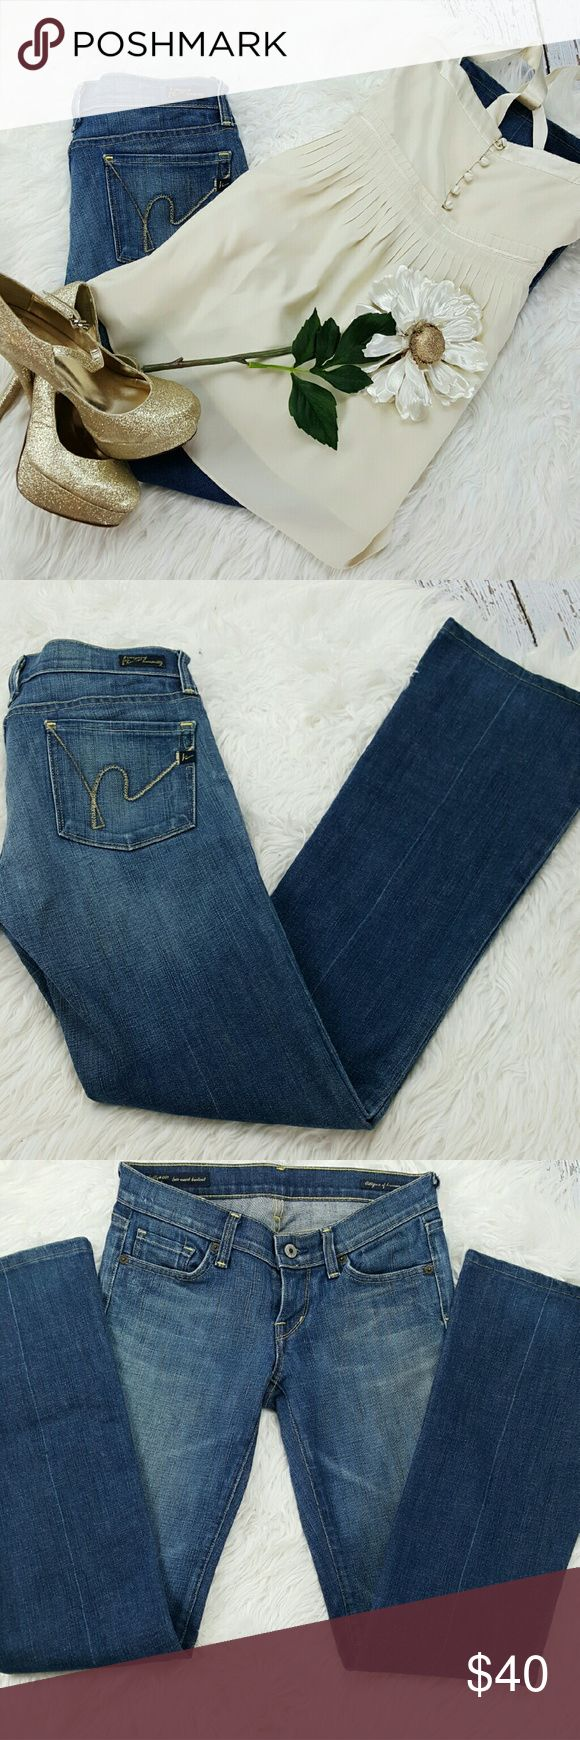 "💞SALE Citizens of Humanity ""Kelly"" Premium Denim Awesome Citizens of Humanity ""Kelly"" Premium Denim 32"" Inseam 7"" Rise 98% Cotton 2% Polyurethane Great Condition Citizens of Humanity Jeans Boot Cut"